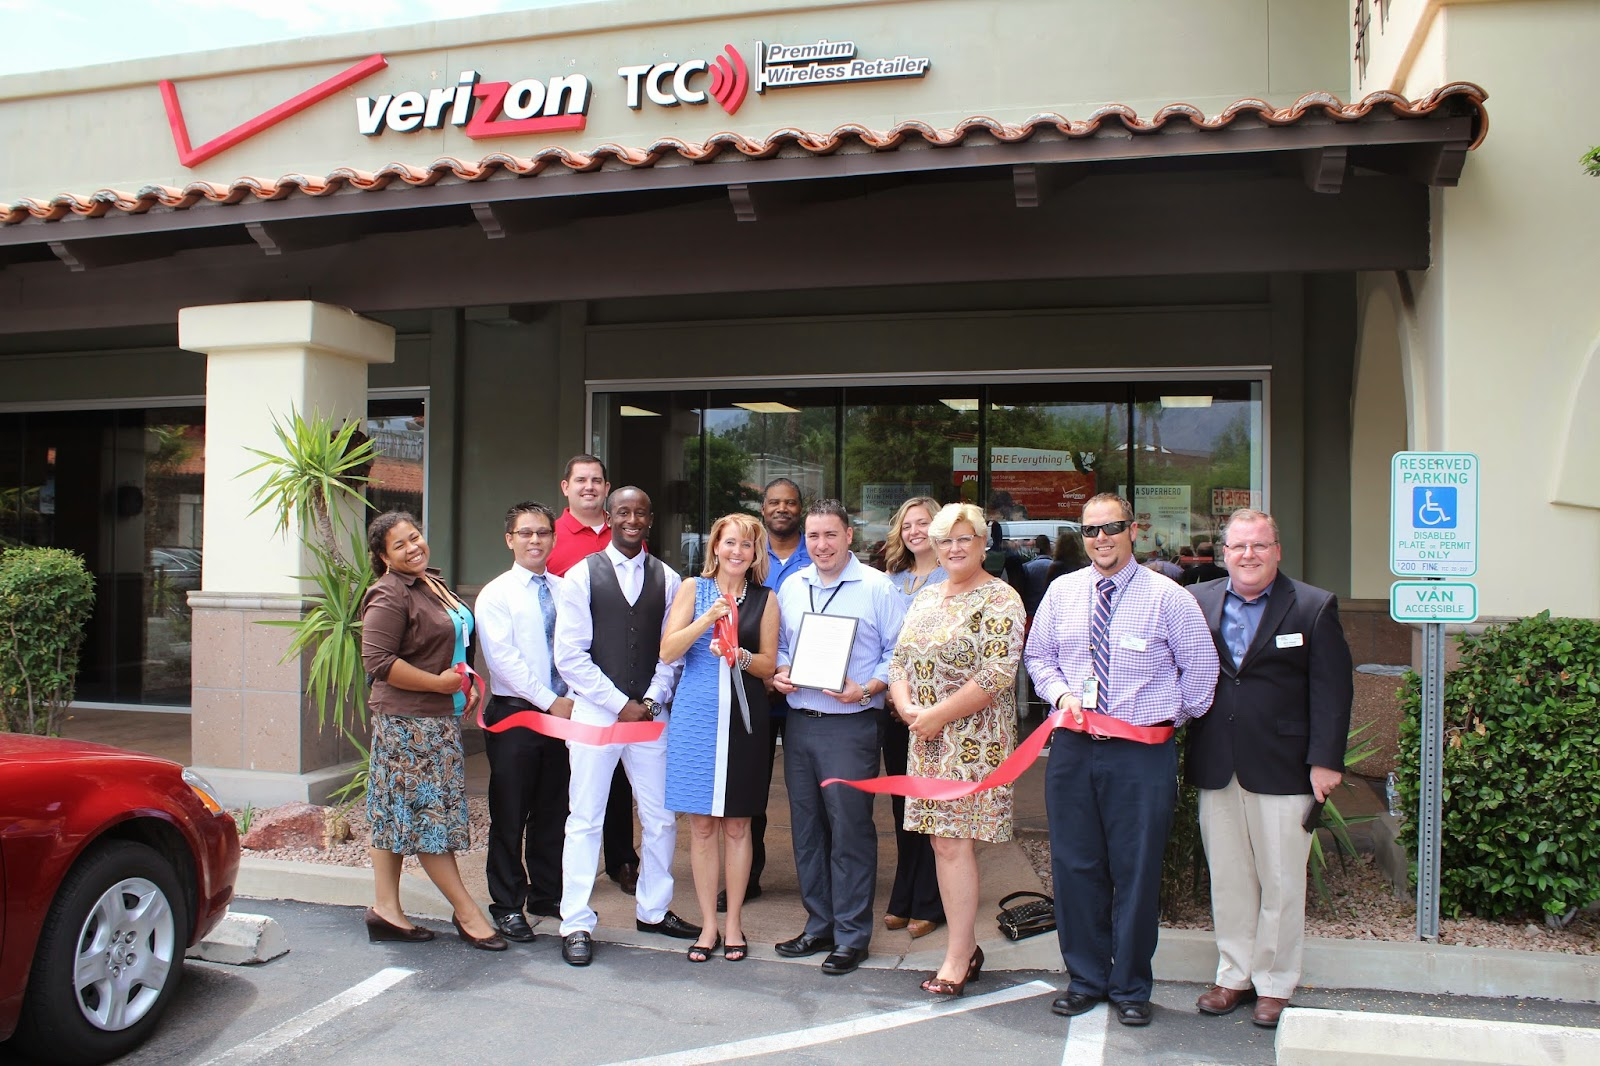 Grand opening for The Cellular Connection, local Verizon premium wireless retailer.